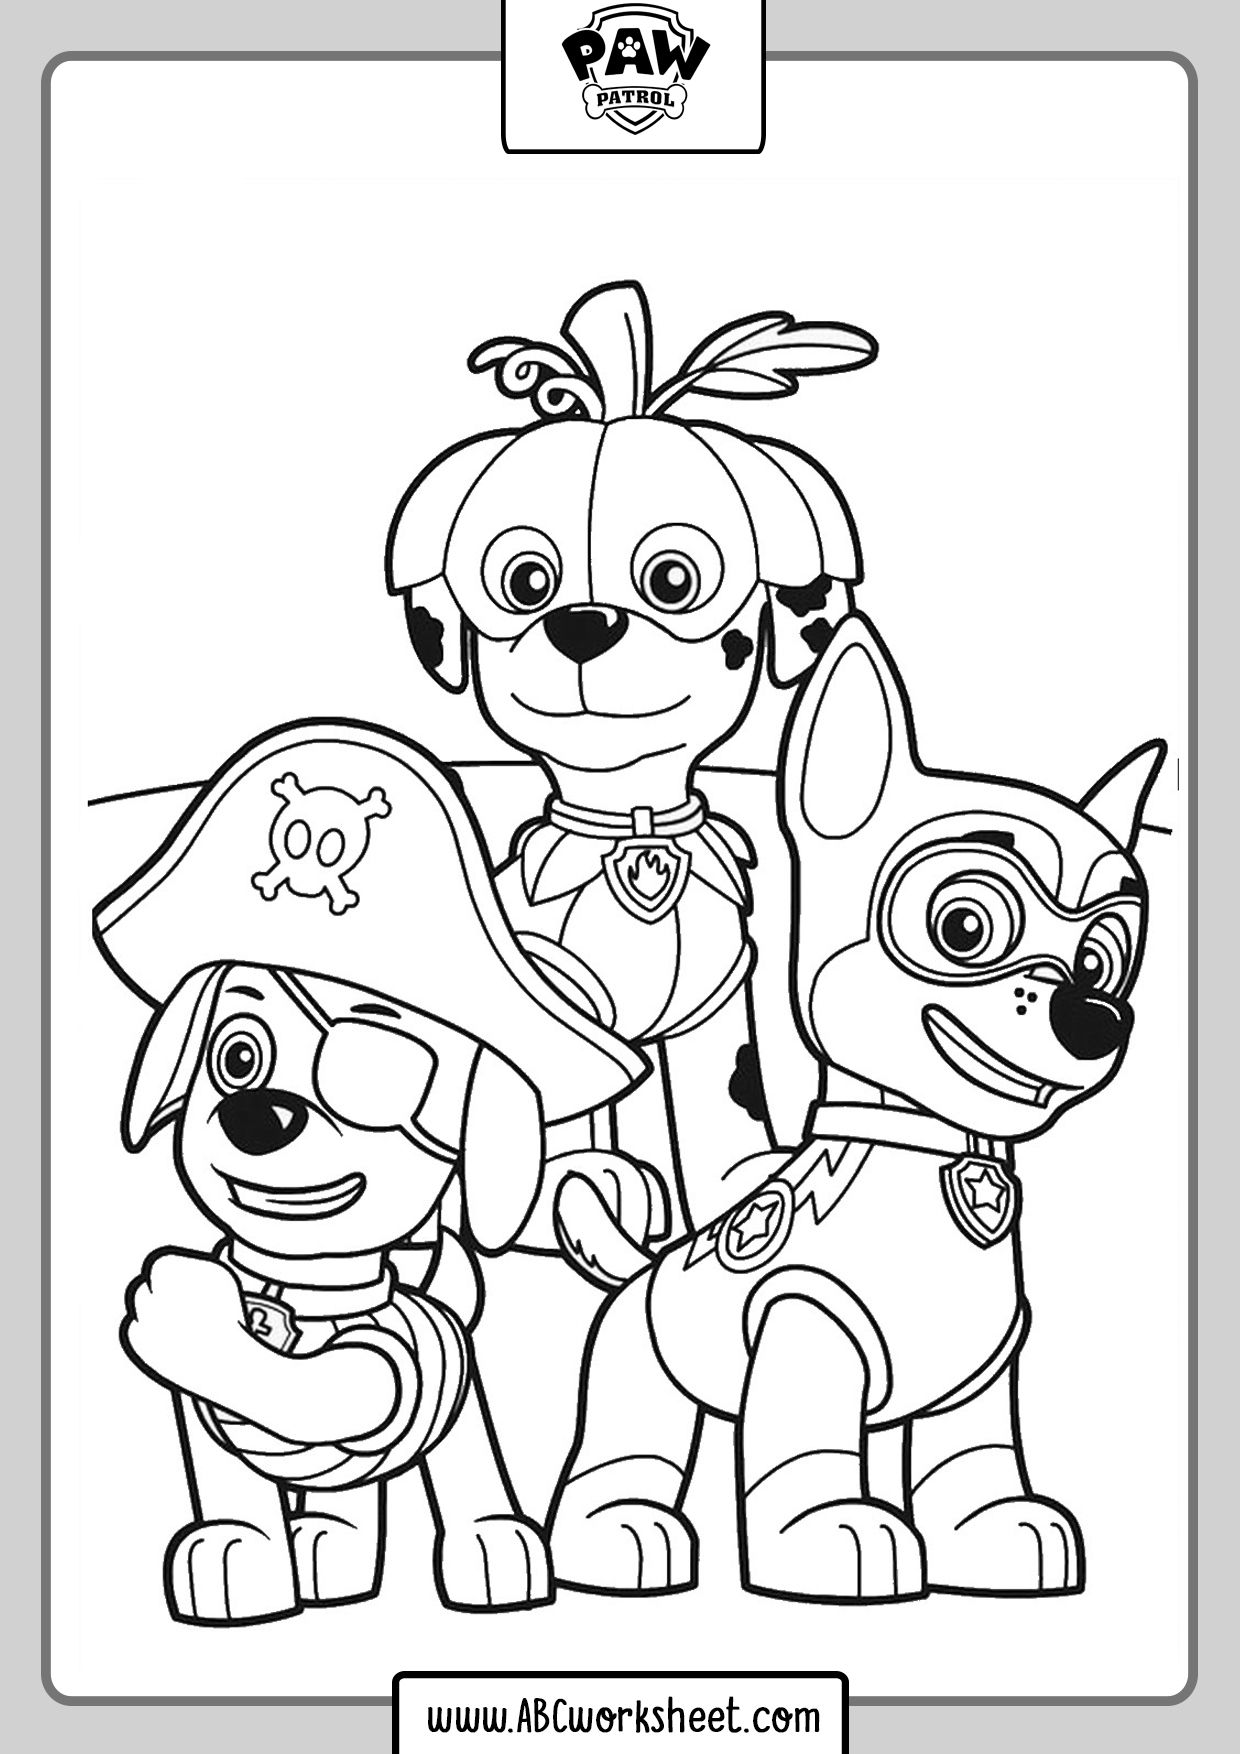 Paw Patrol Coloring Pages Abc Worksheet Paw Patrol Coloring Paw Patrol Coloring Pages Abc Coloring Pages [ 1754 x 1240 Pixel ]